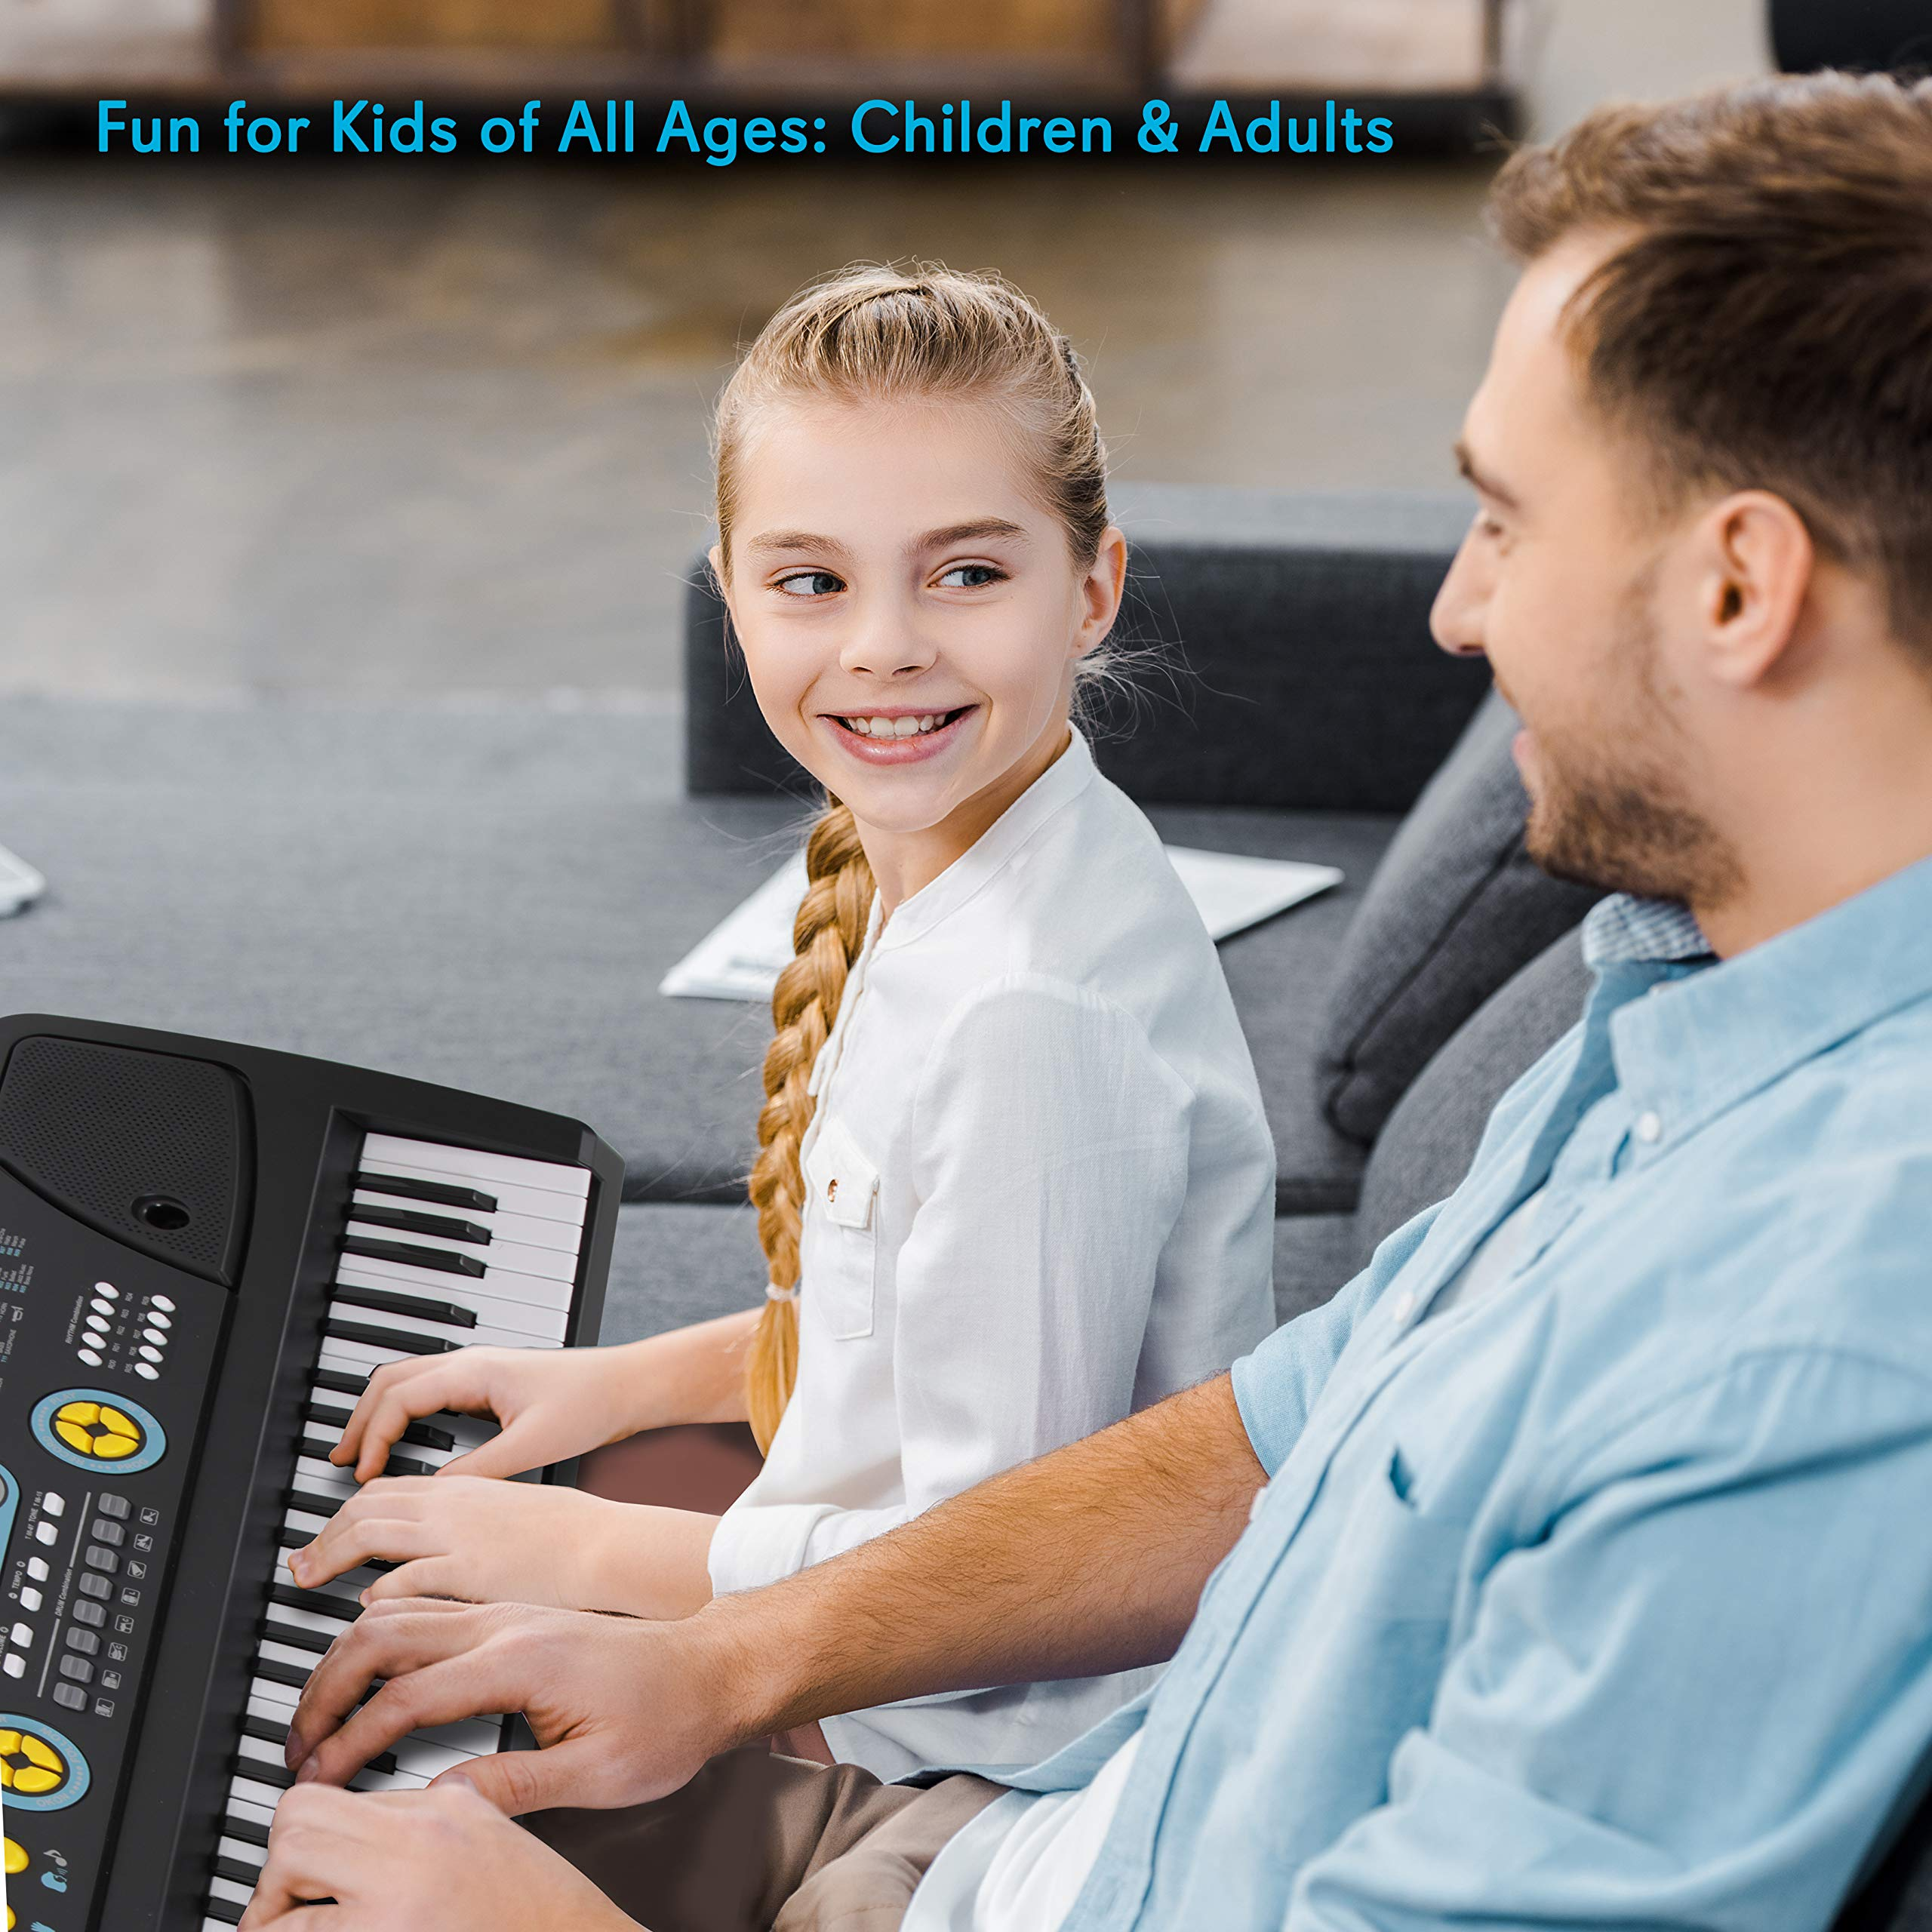 Digital Piano Kids Keyboard - Portable 61 Key Piano Keyboard, Learning Keyboard for Beginners w/ Drum Pad, Recording, Microphone, Music Sheet Stand, Built-in Speaker - Pyle by Directly Cheap (Image #5)